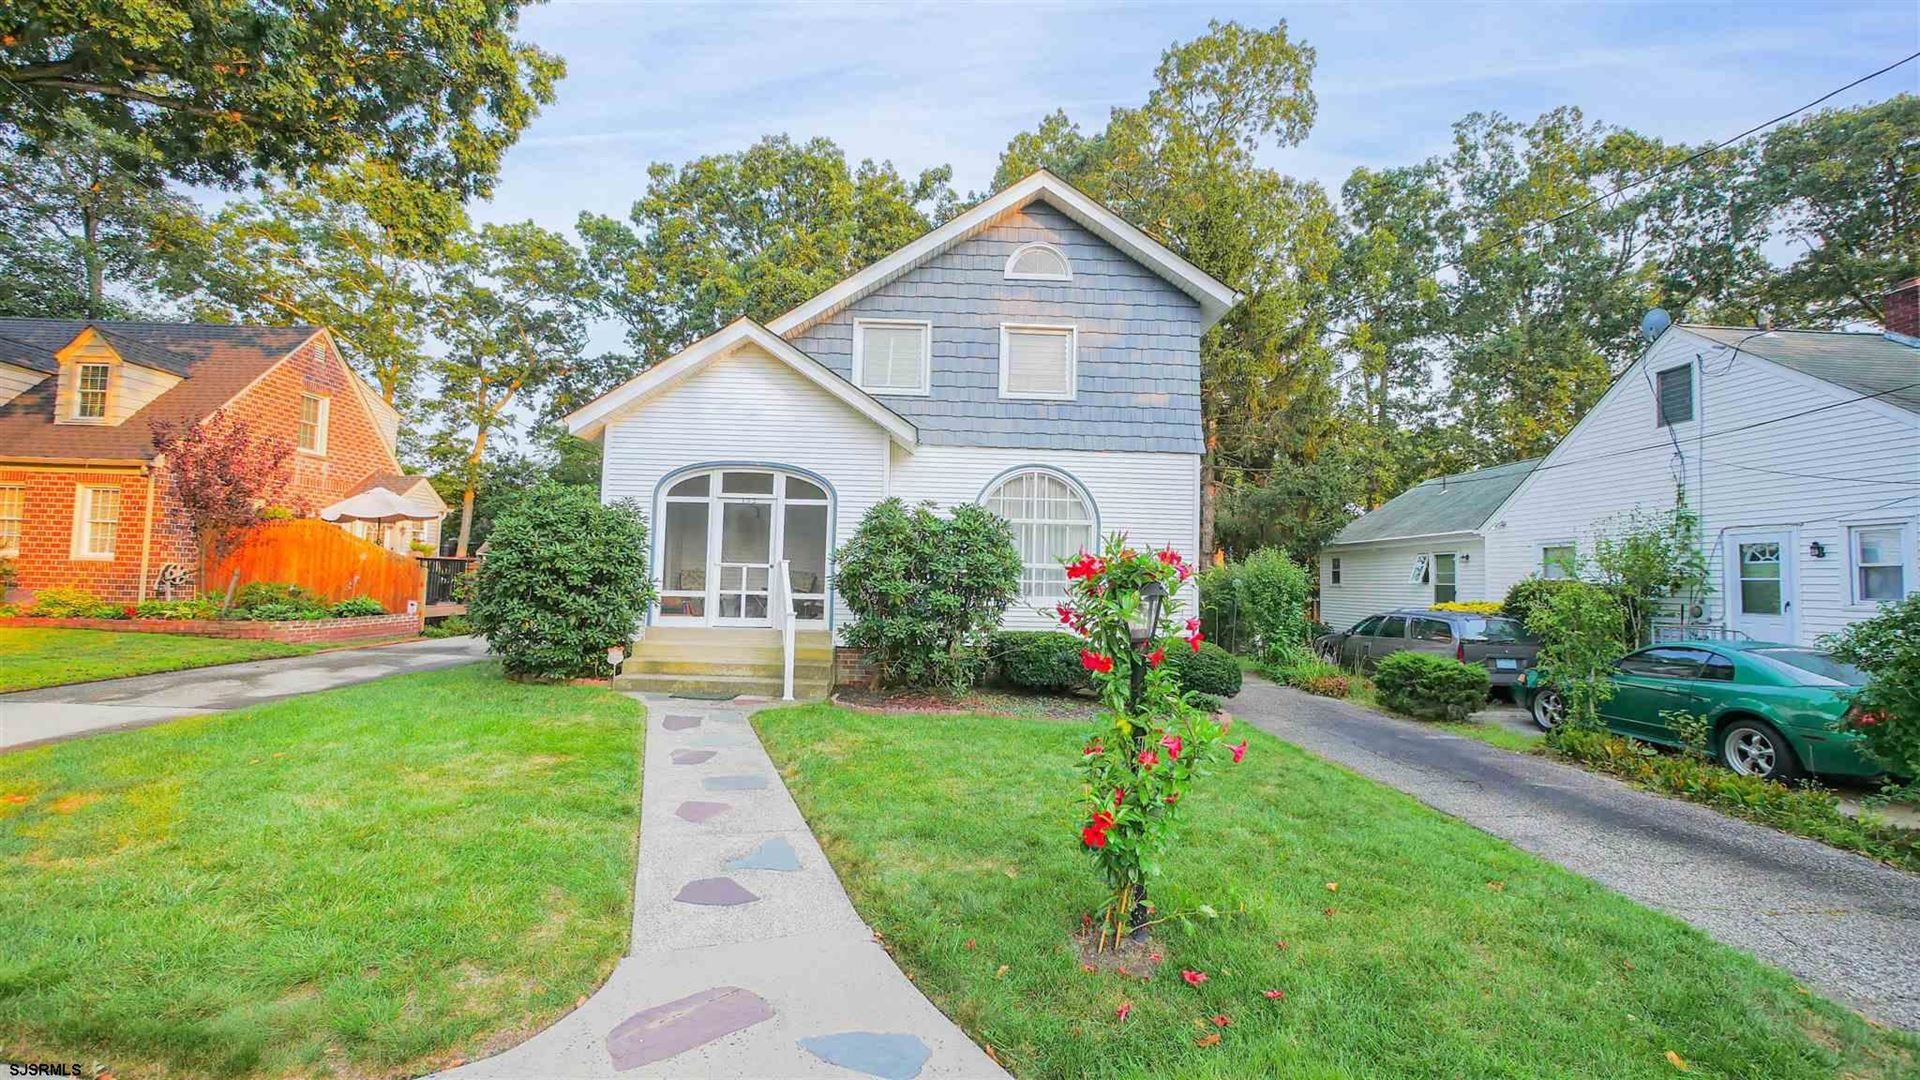 122 N New Road, Absecon, NJ 08201 - #: 555195